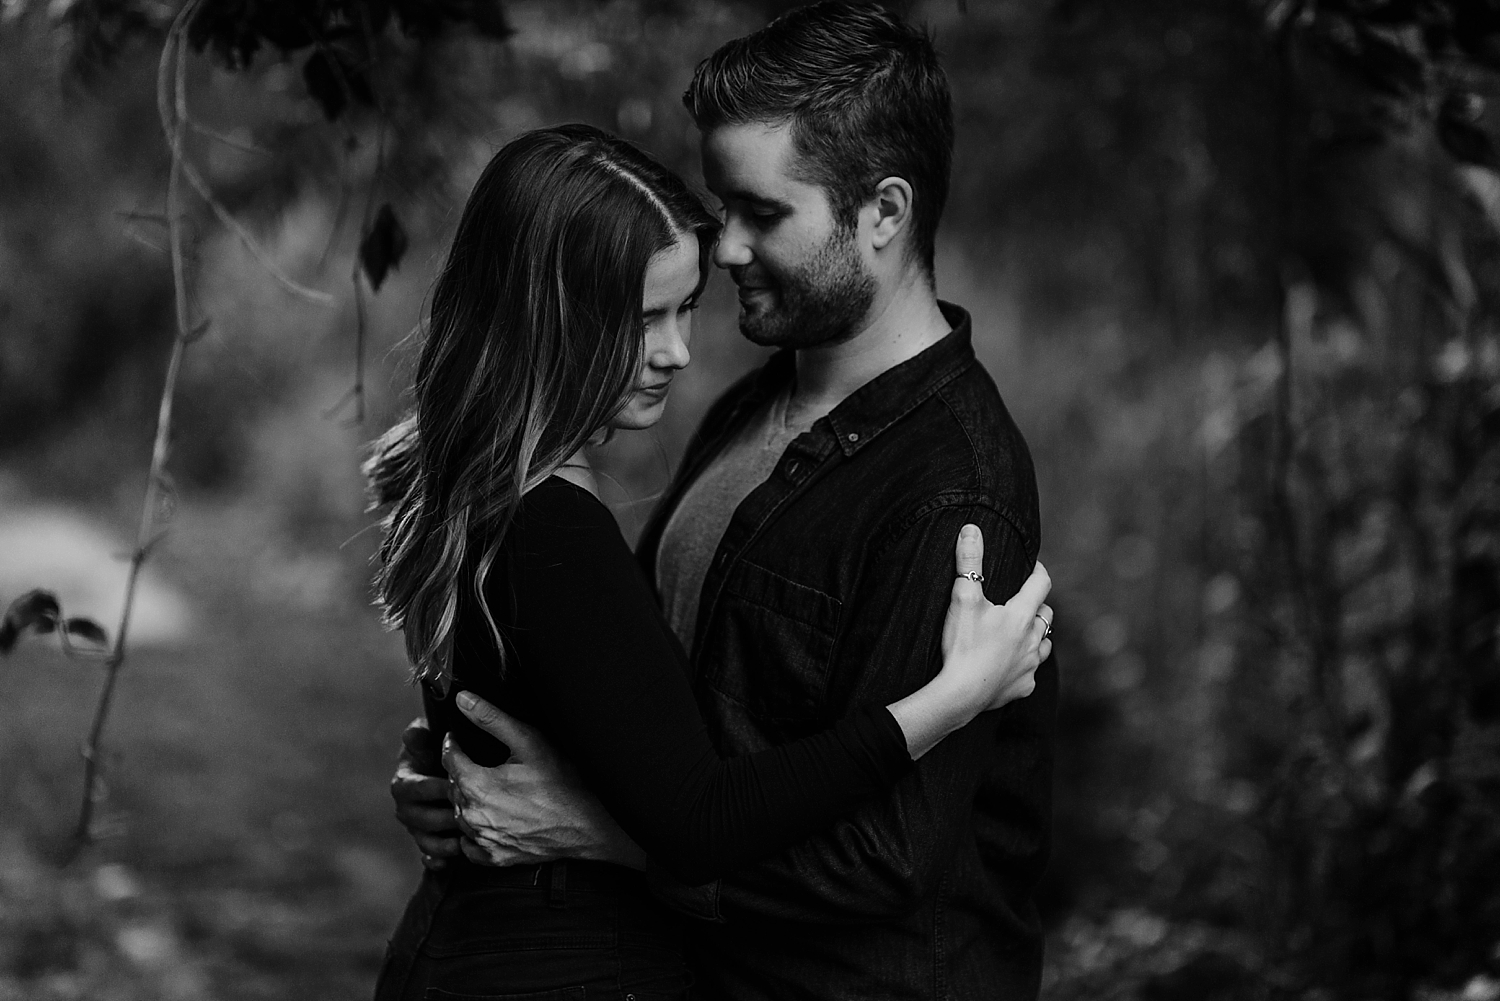 Intimate-Sunset-Couples-Session-52.jpg